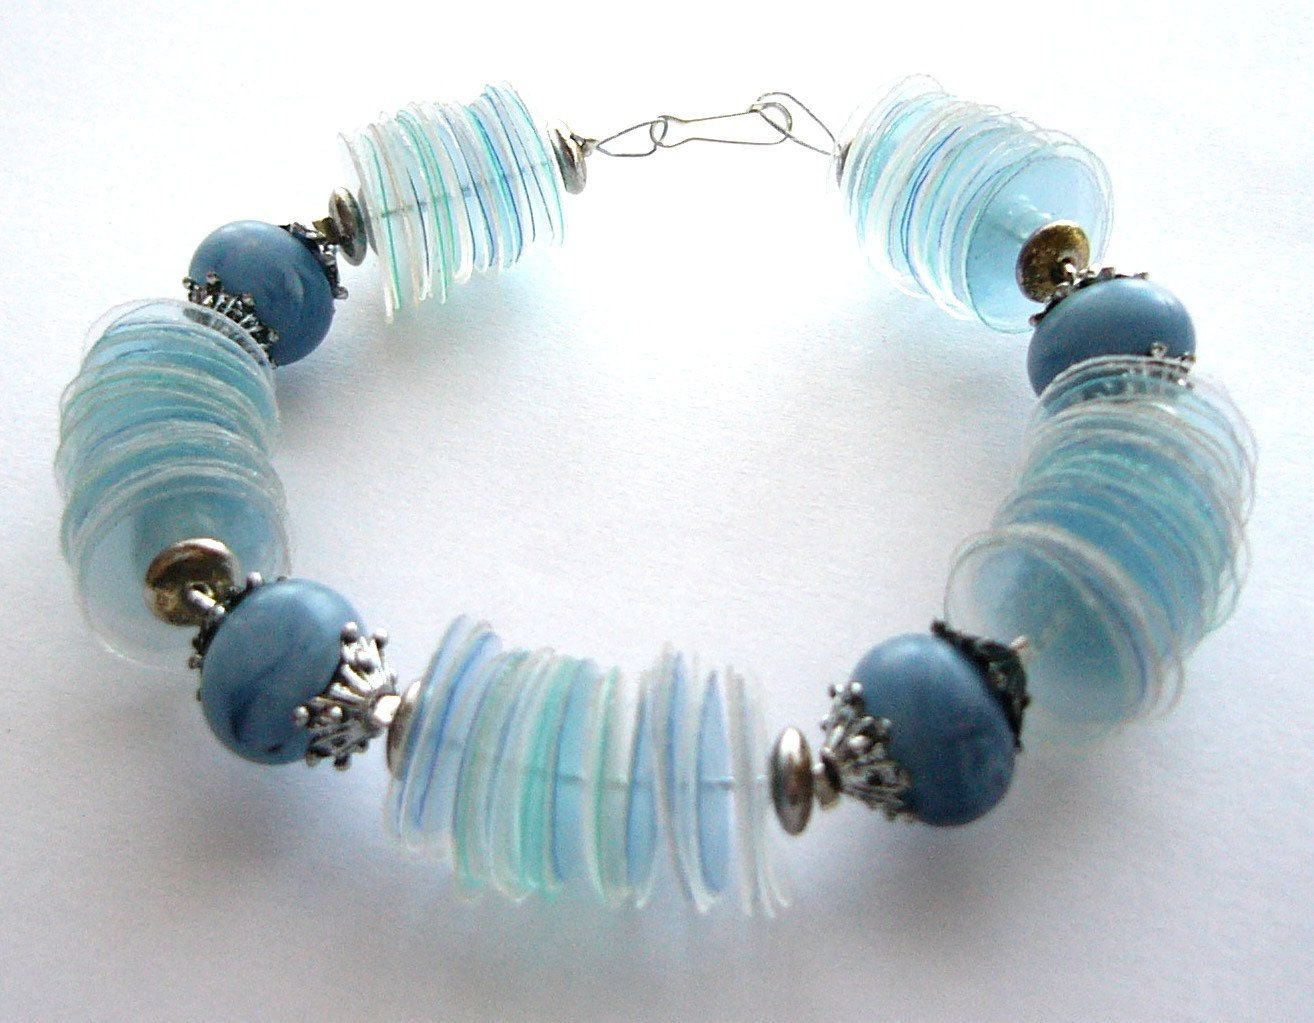 Upcycled blue bracelet made of recycled plastic bottles with blue ...